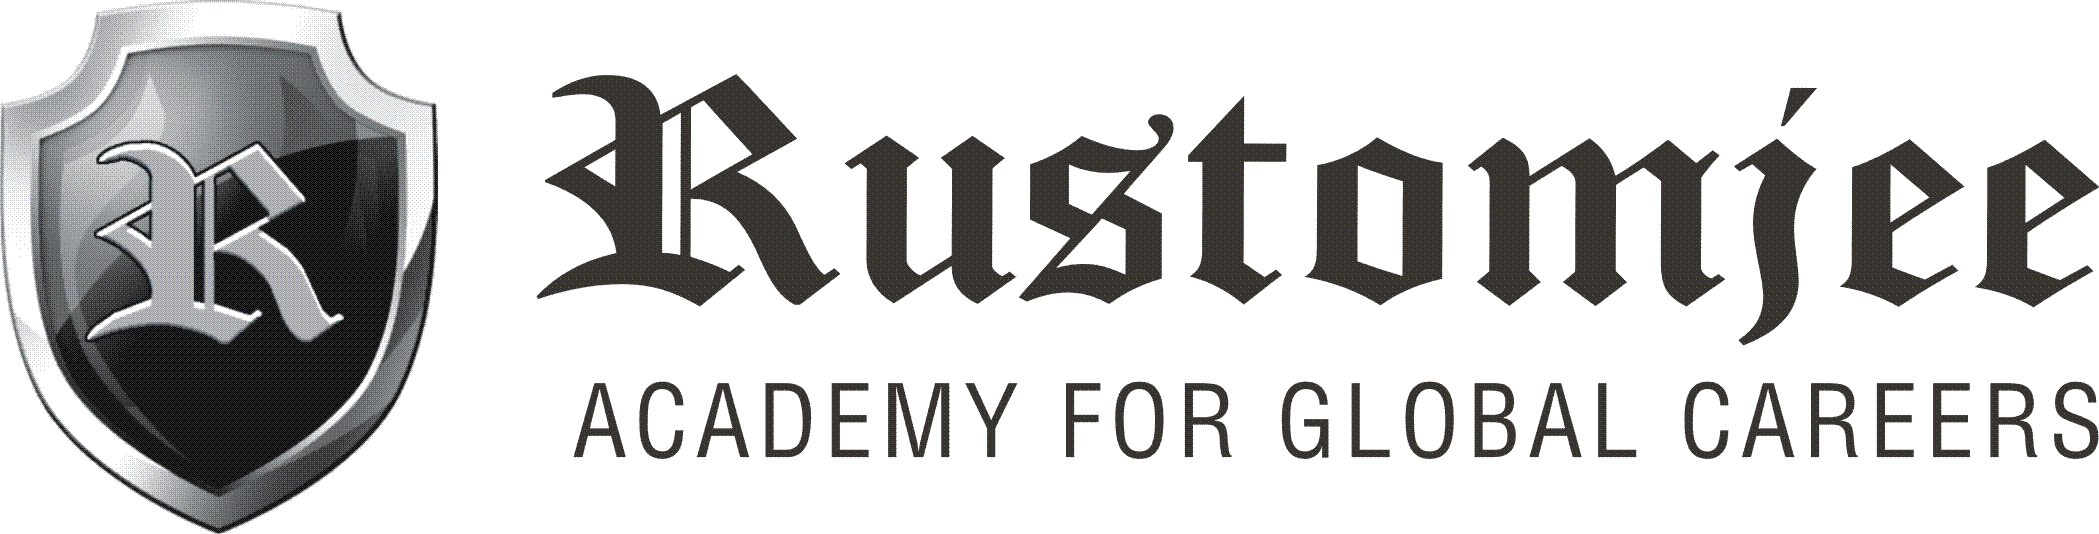 Rustomjee Academy for Global Careers